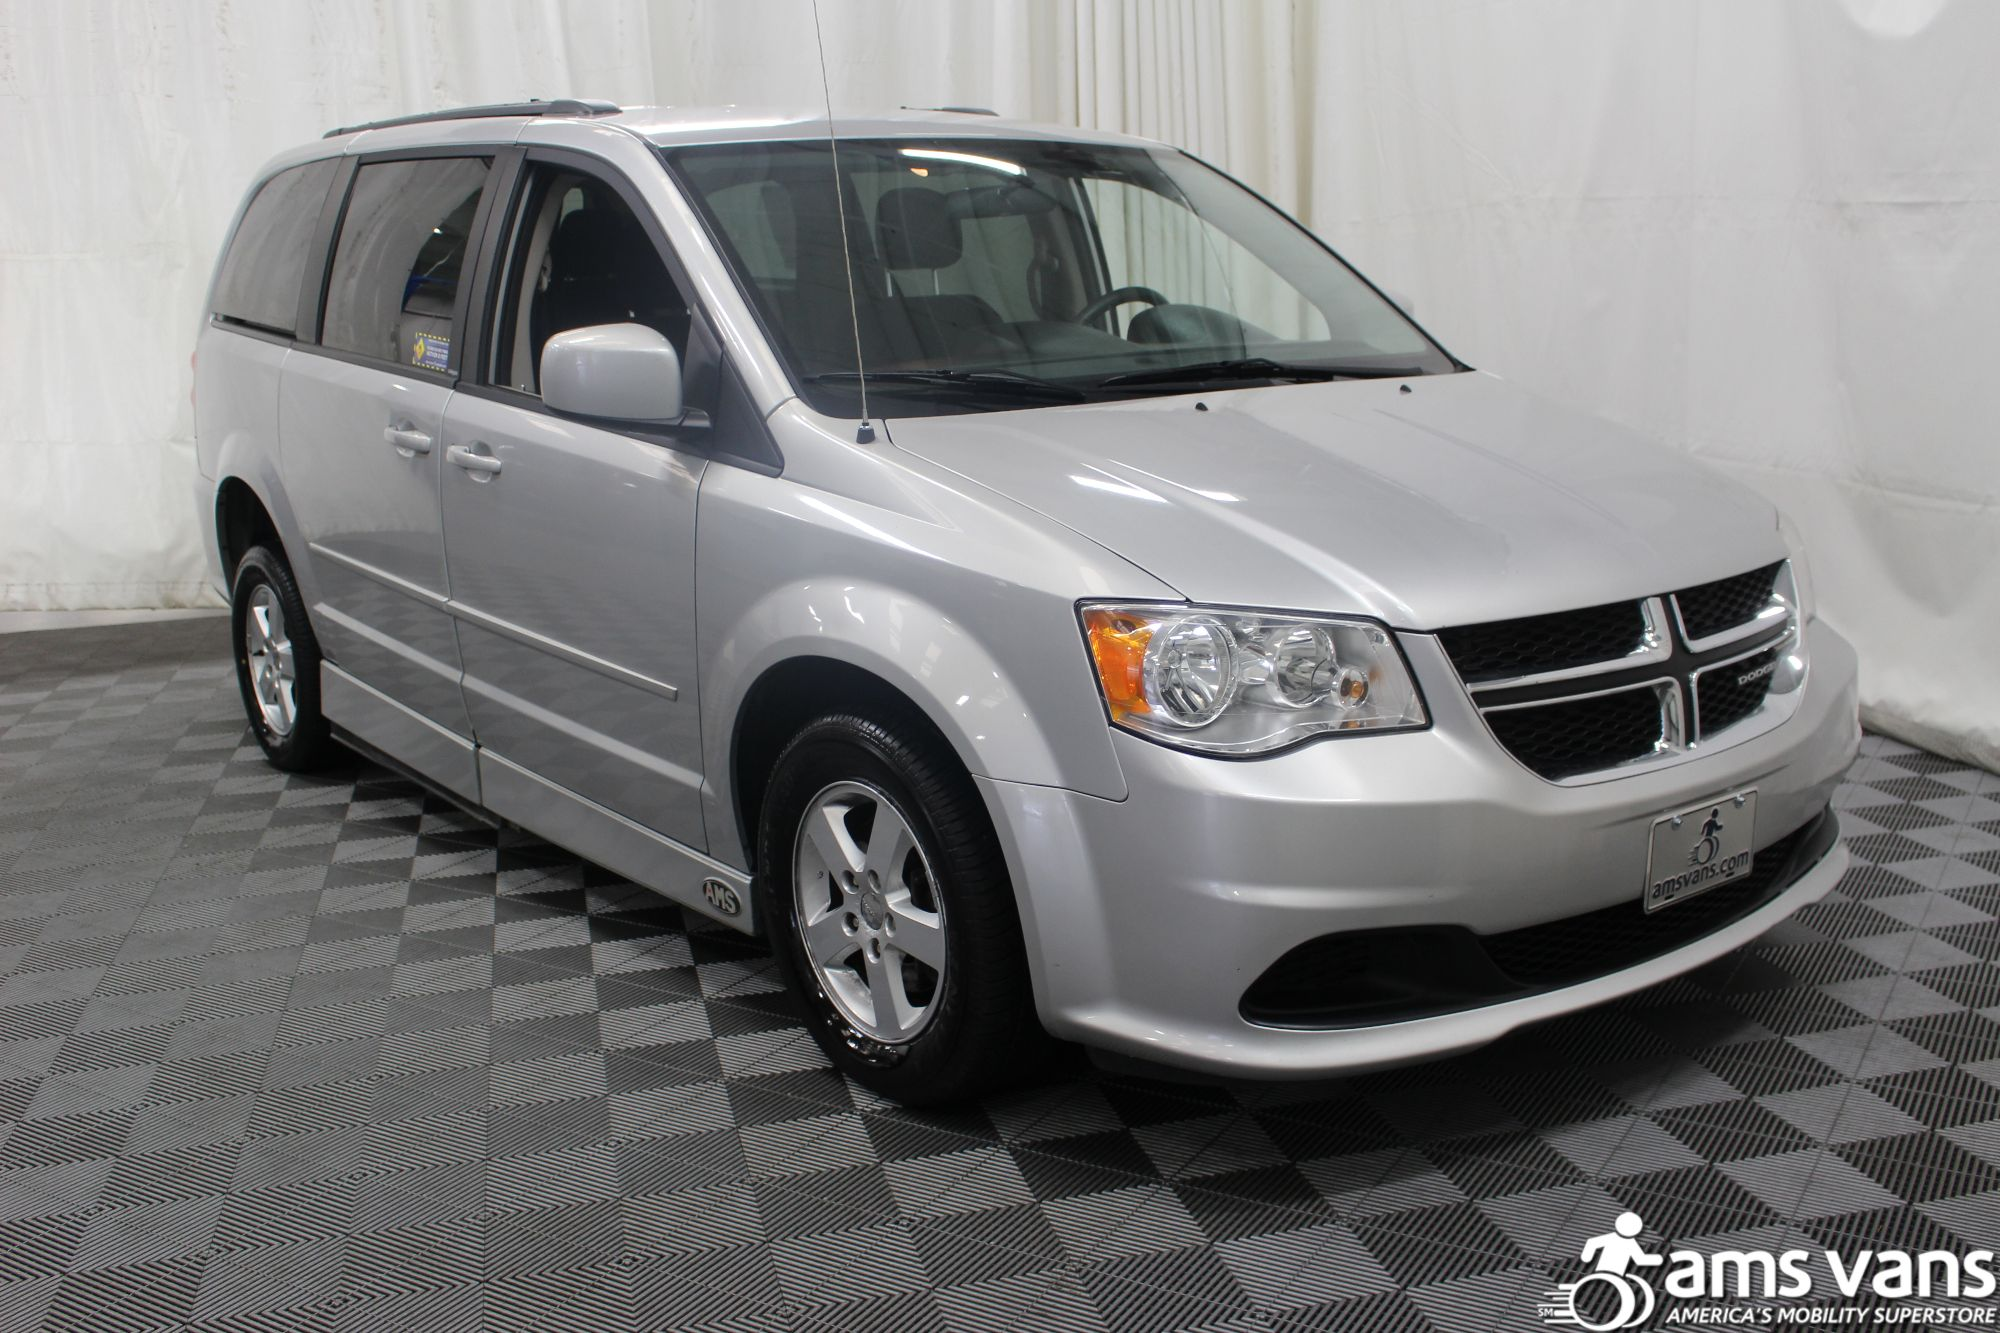 2011 Dodge Grand Caravan Mainstreet Wheelchair Van For Sale #7